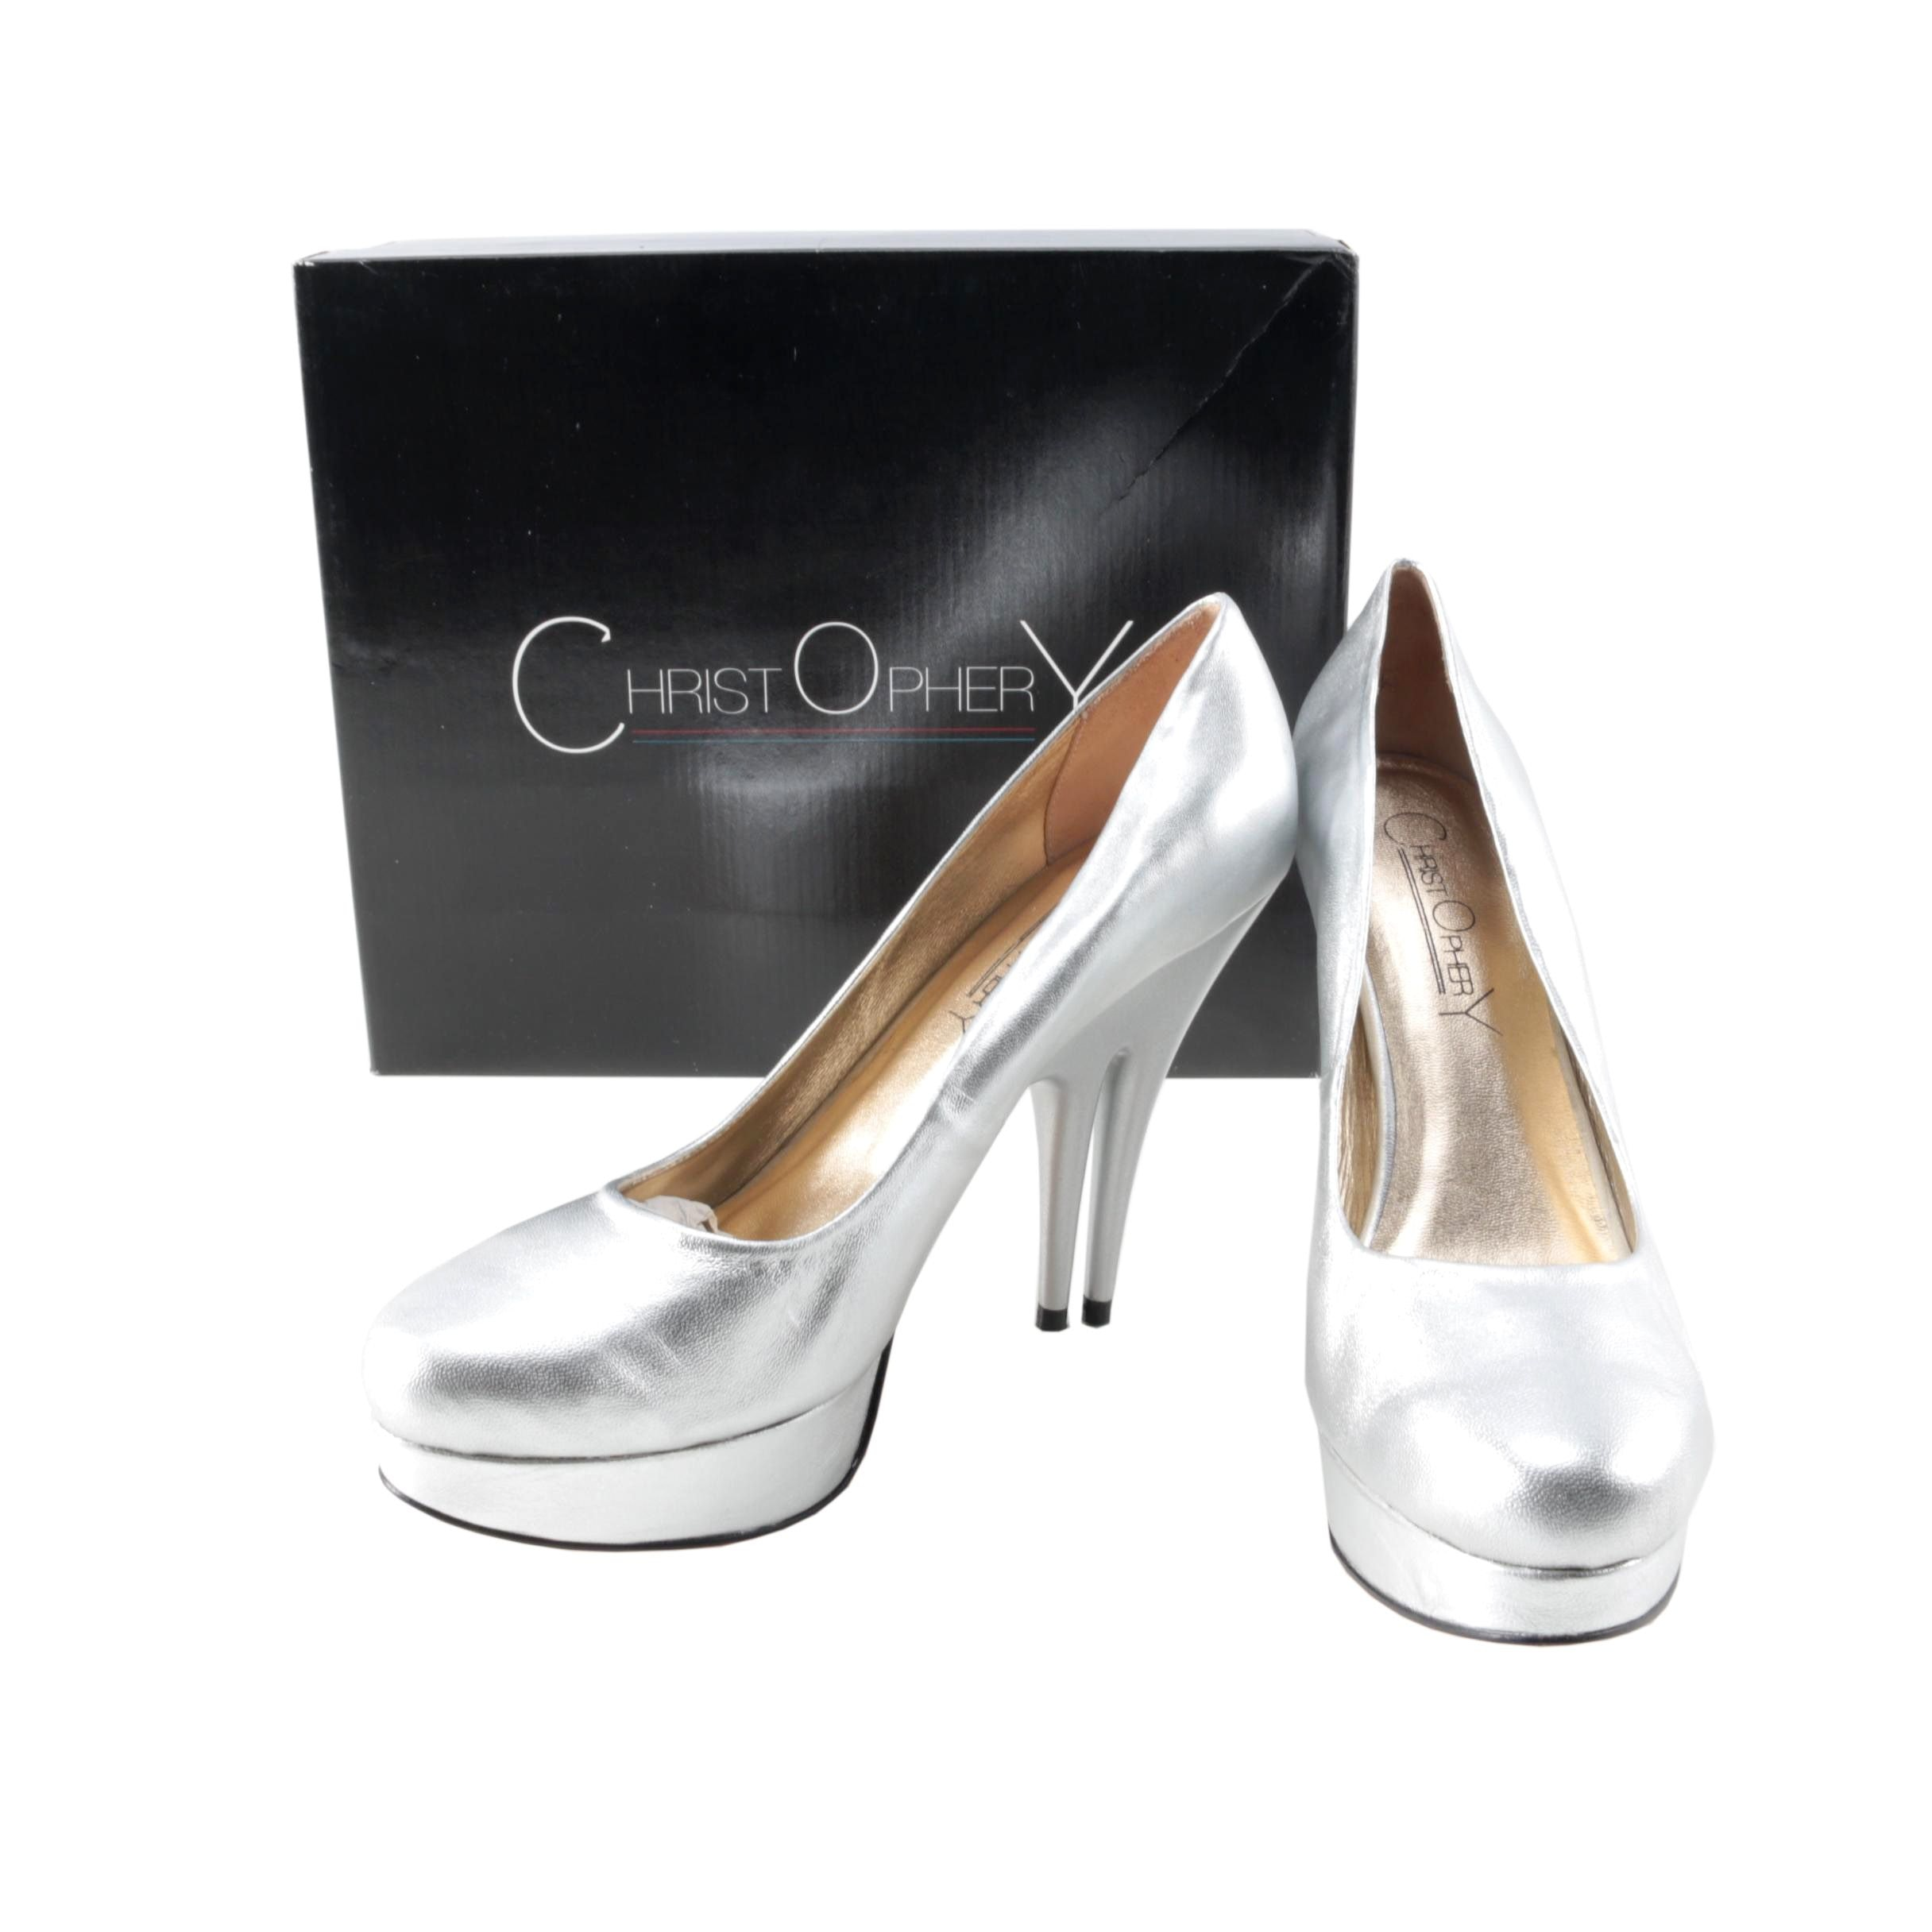 Christopher Coy Collection Prototype Heels in Silver Metallic Leather